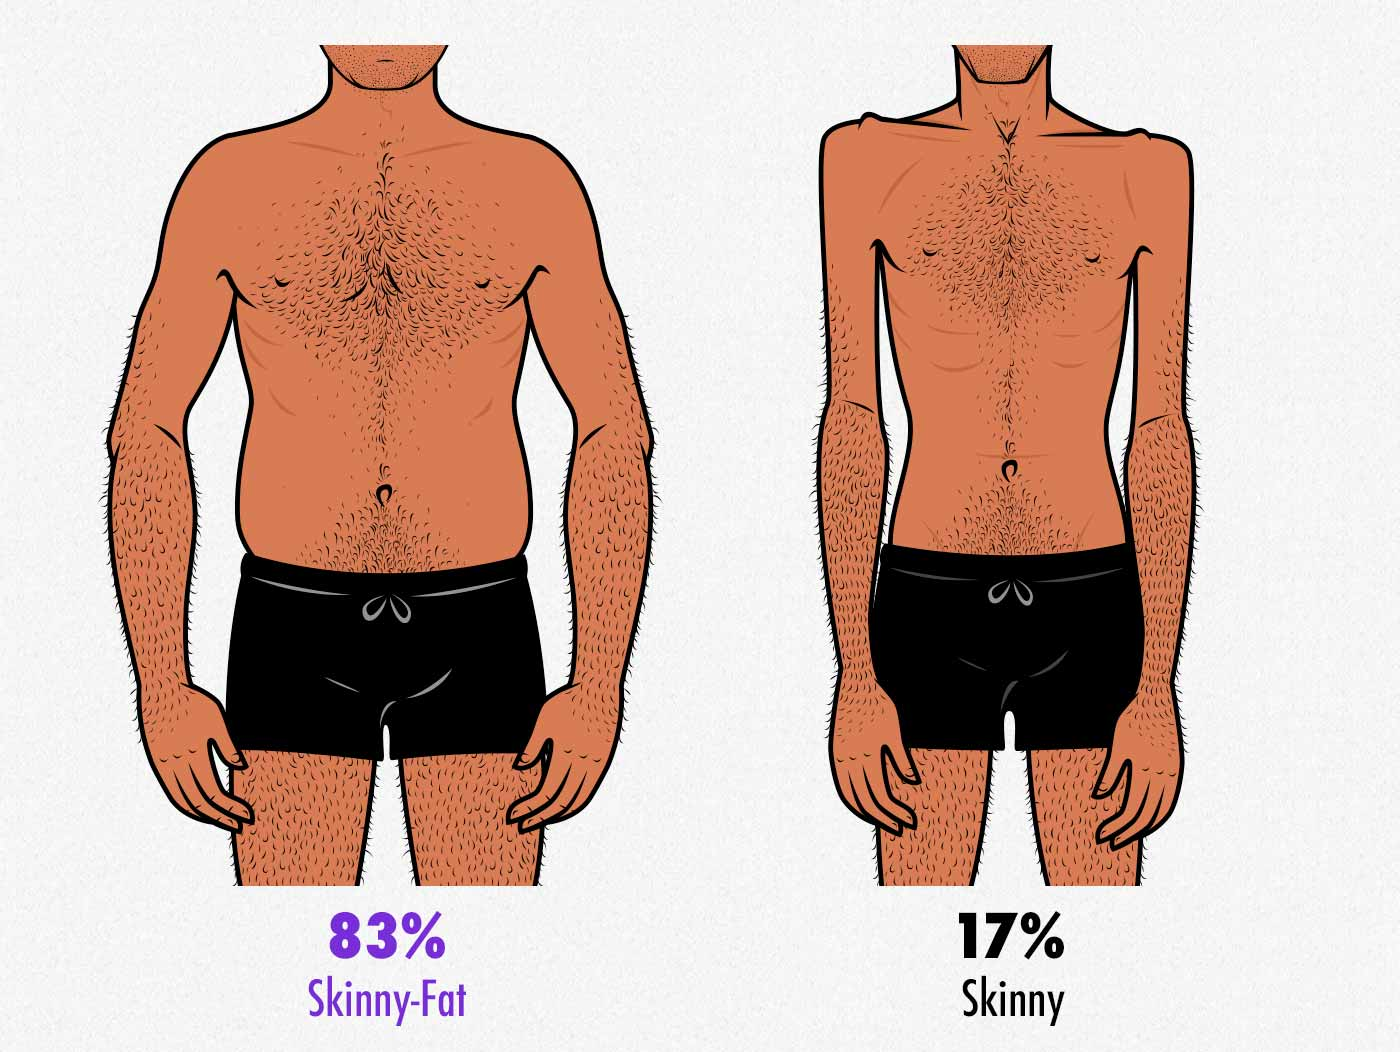 Illustration comparing skinny and skinny-fat bodies.